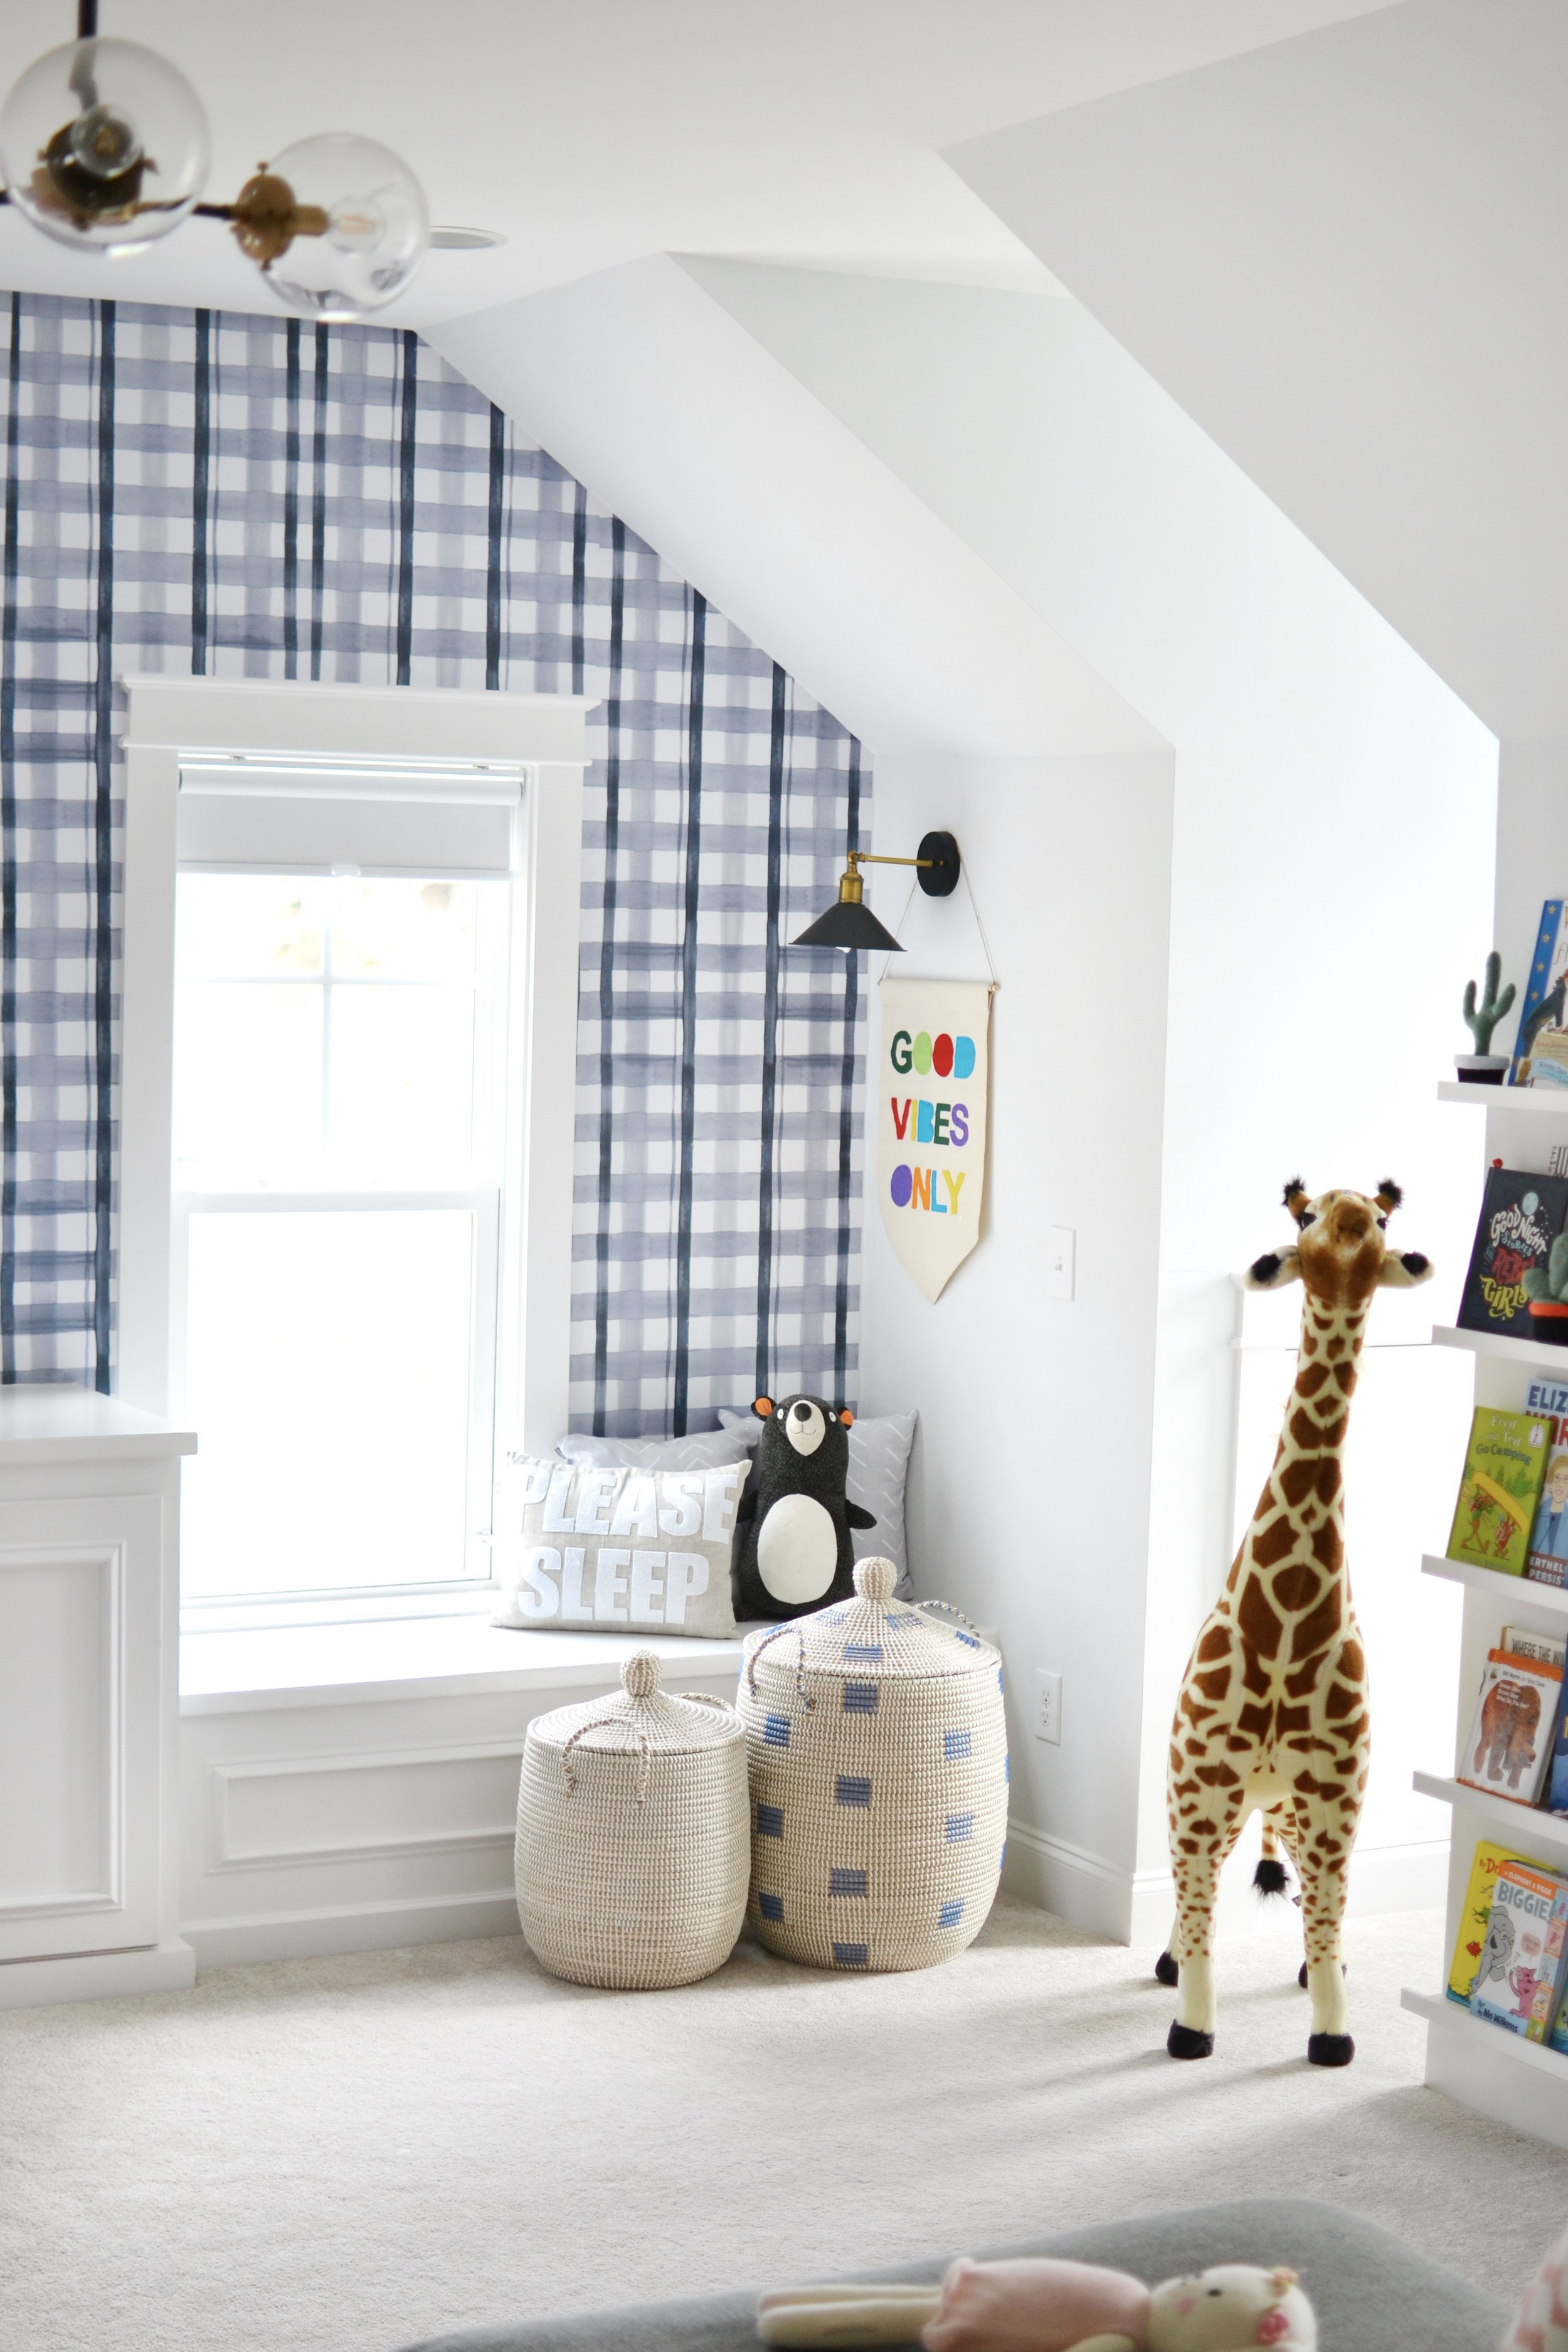 Our Home: The Playroom: From Preschoolers to Teens